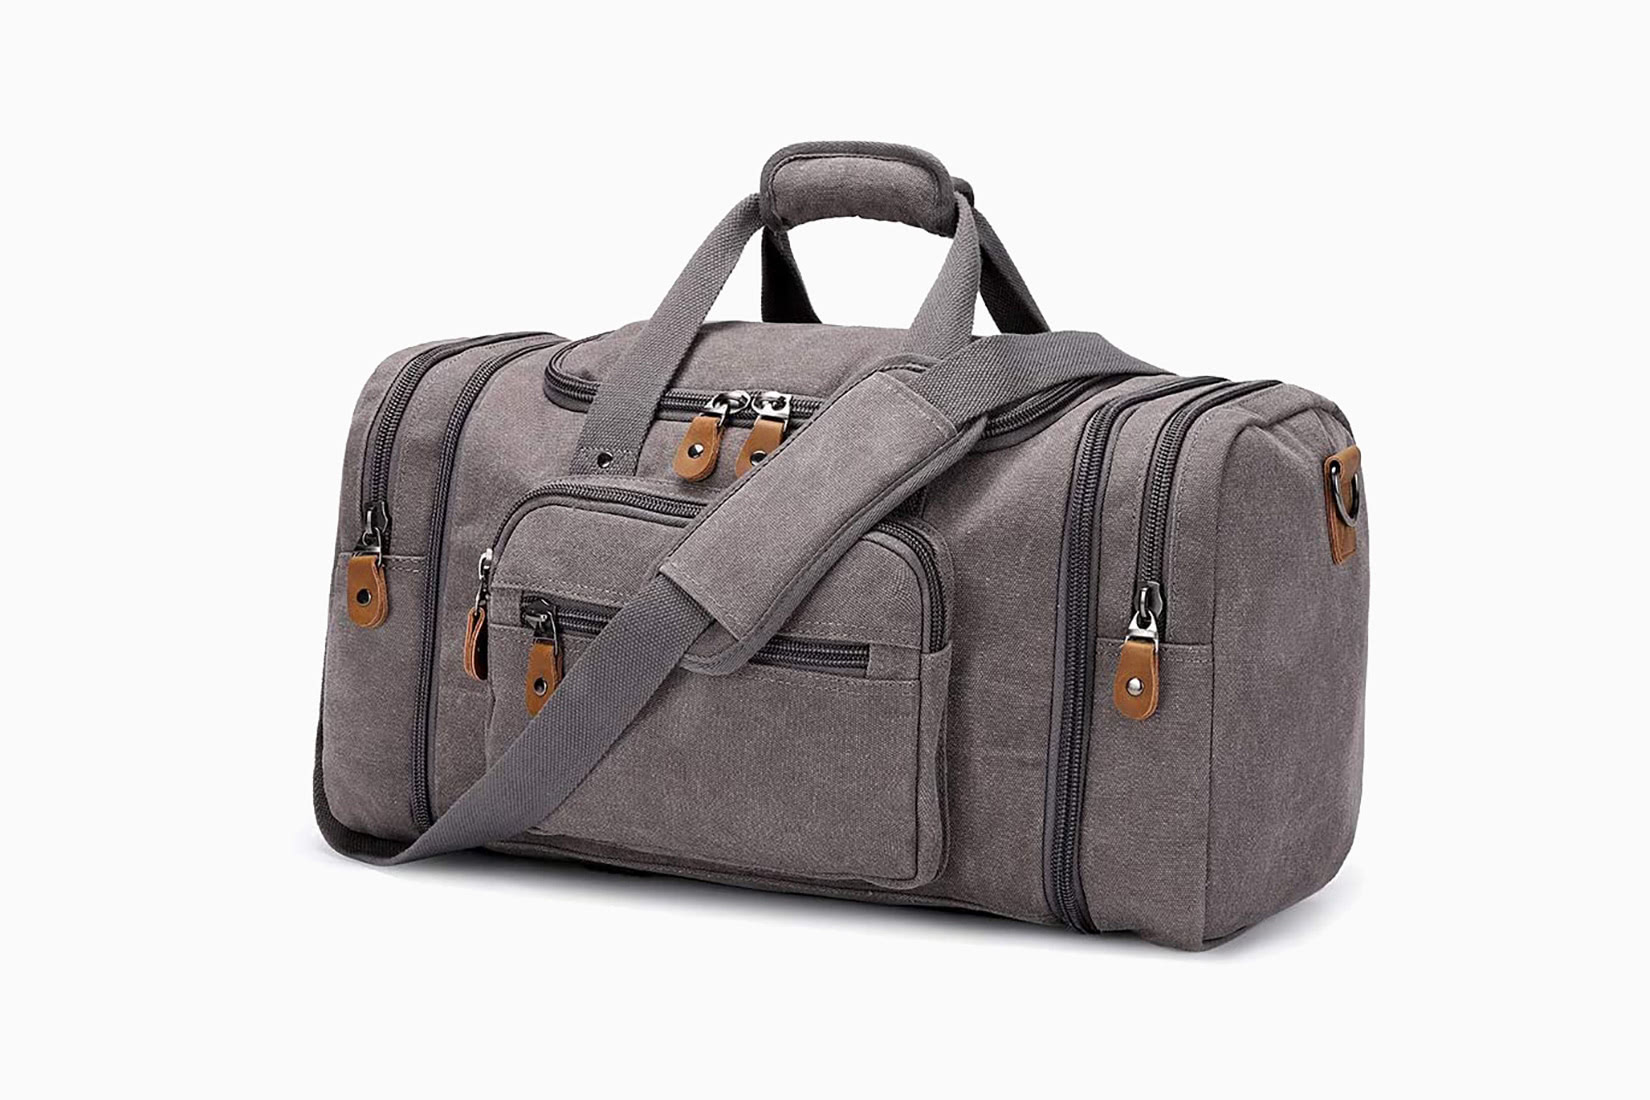 best duffel bags laptop plambag - Luxe Digital